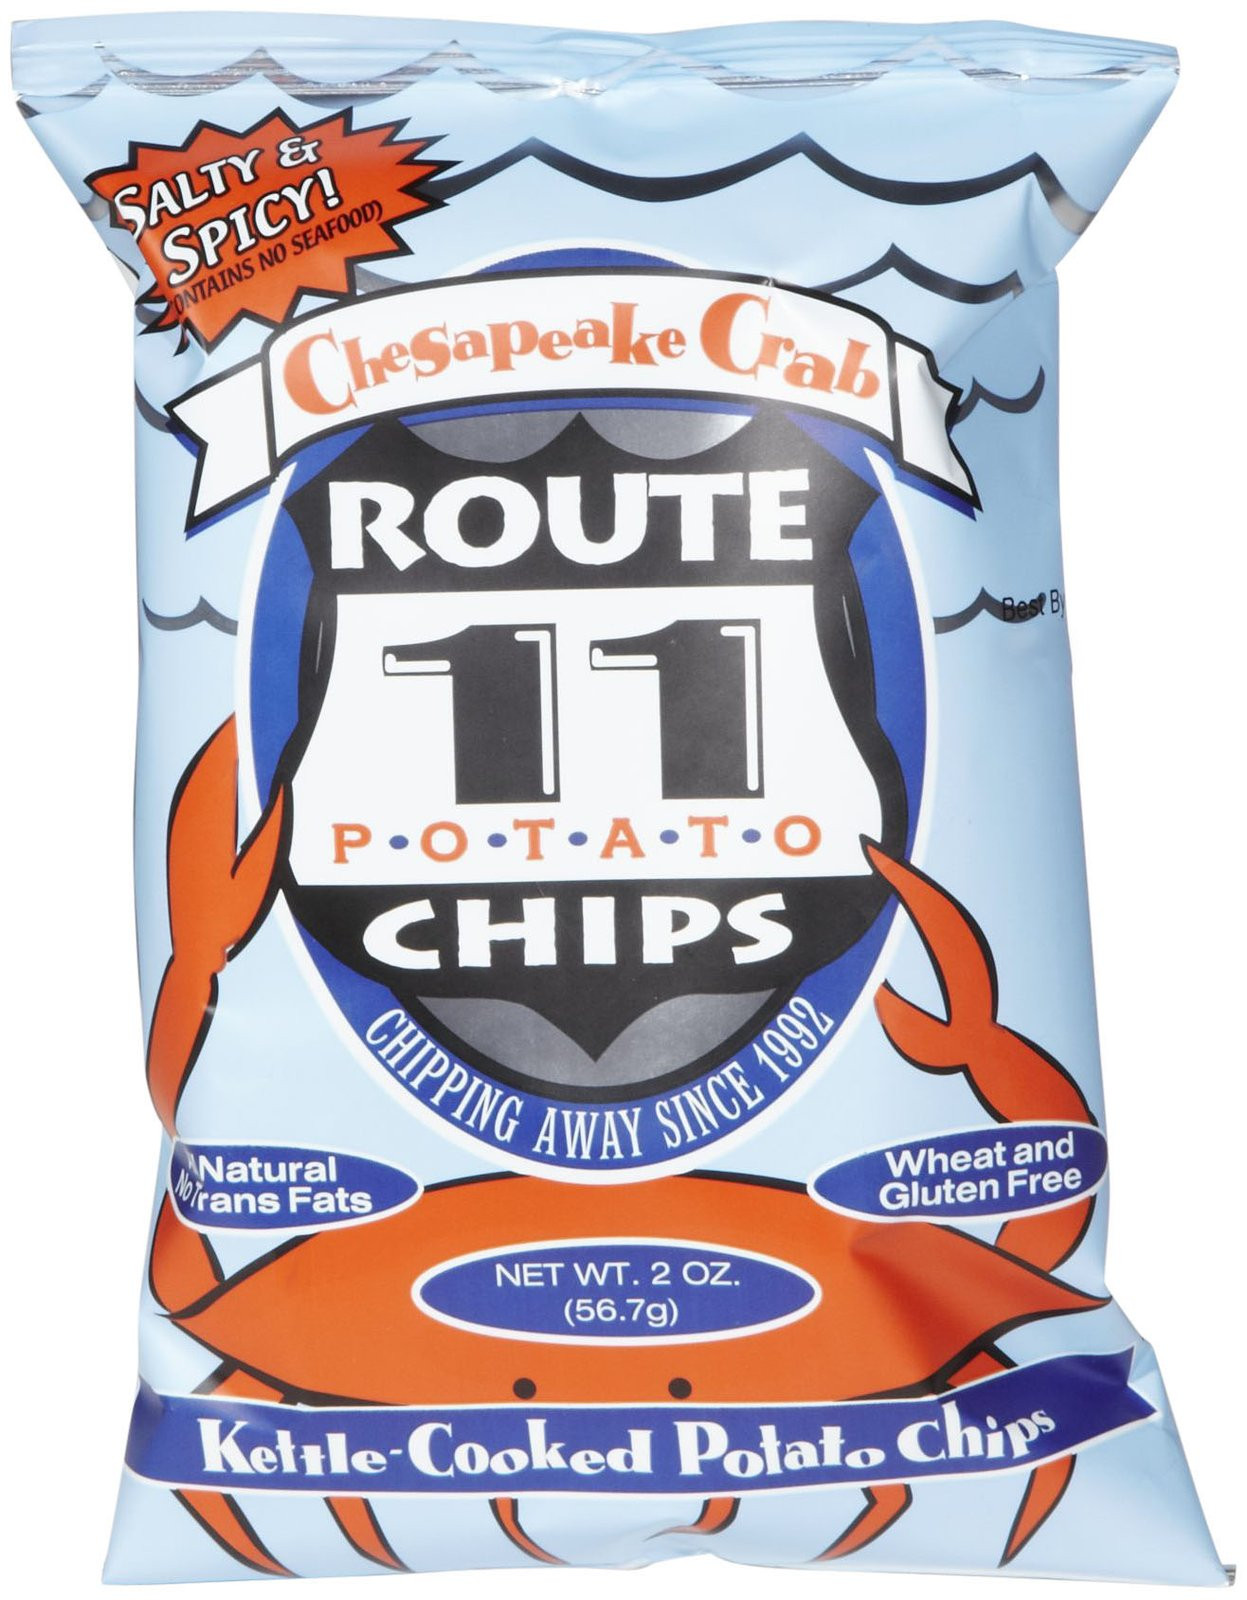 Route 11 Potato Chips  Jual Route 11 Chesapeake Crab Potato Chips Makanan Snack